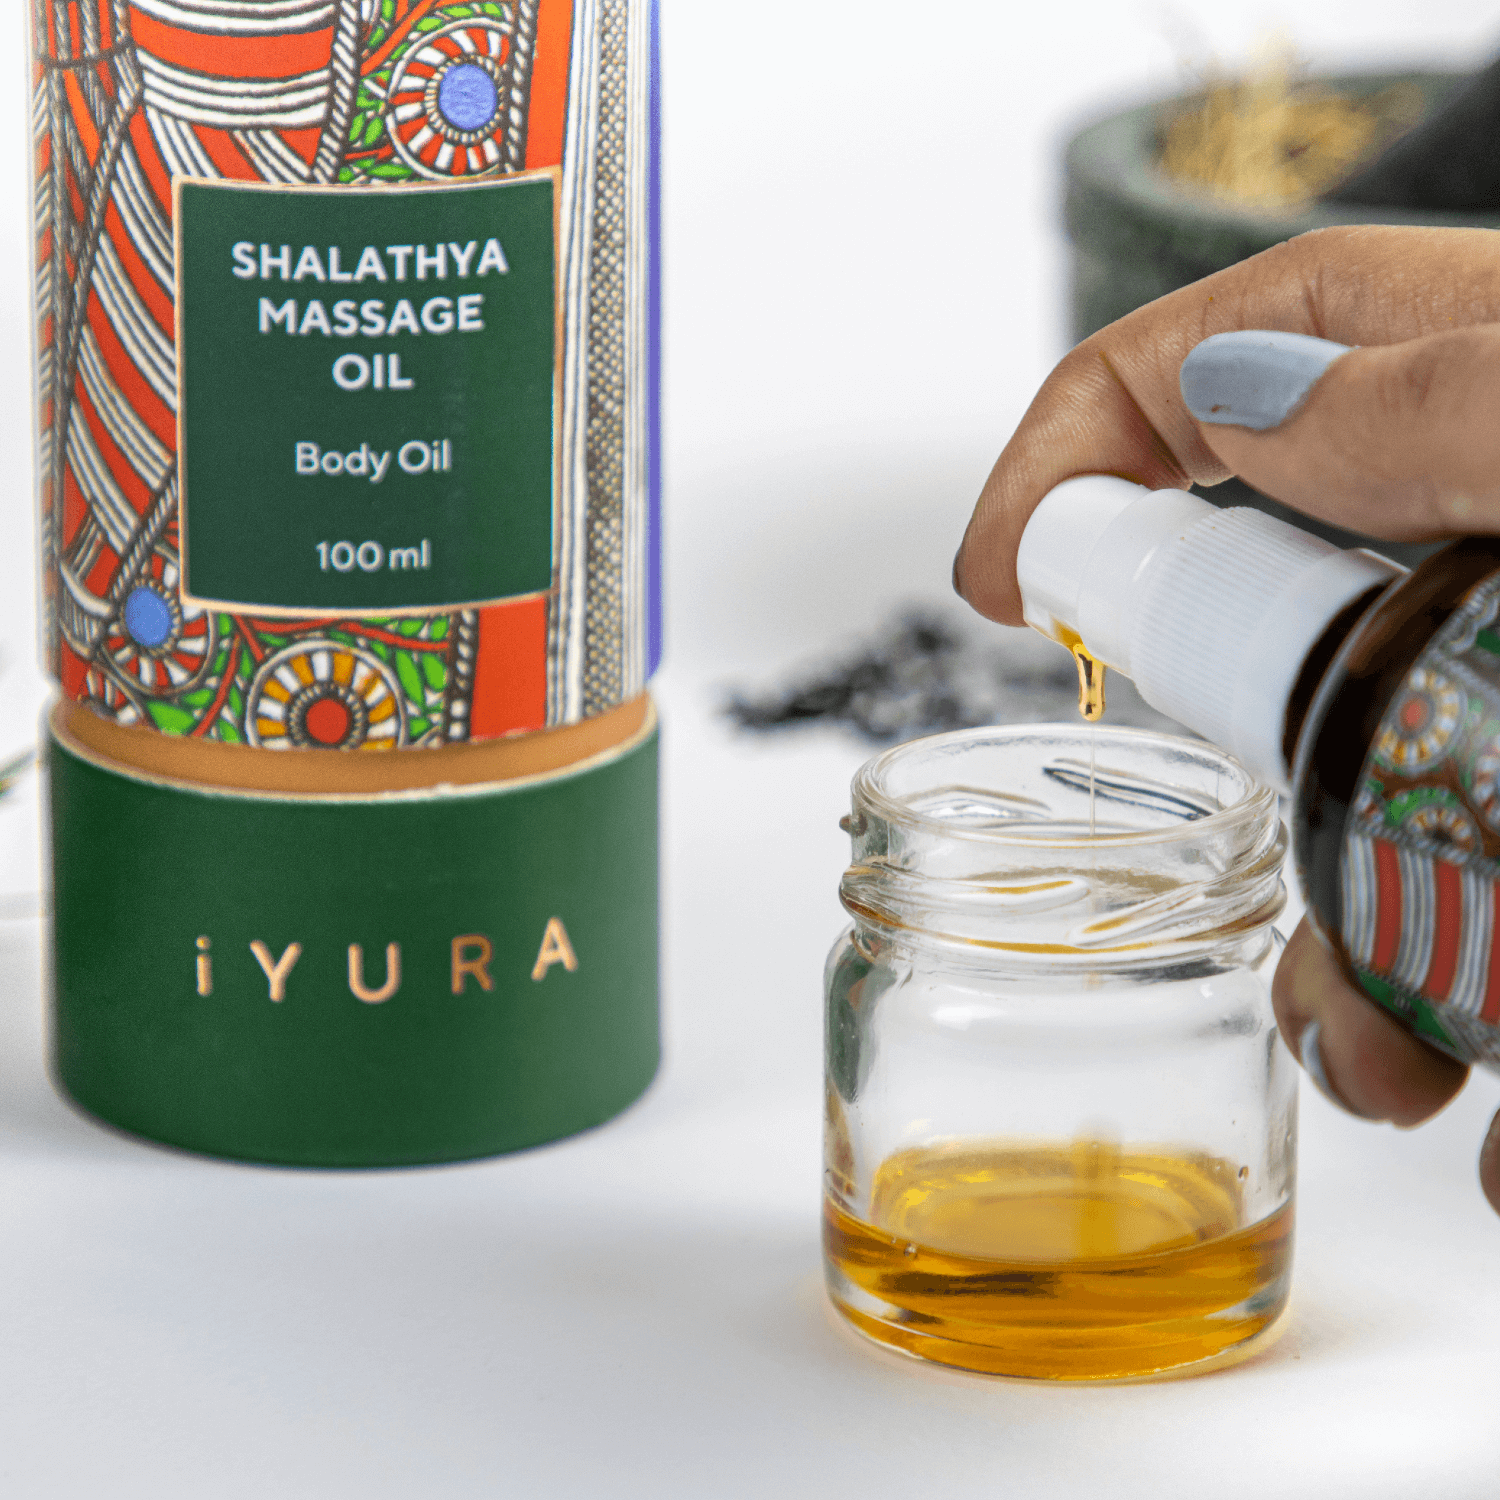 Shalathya Massage Oil